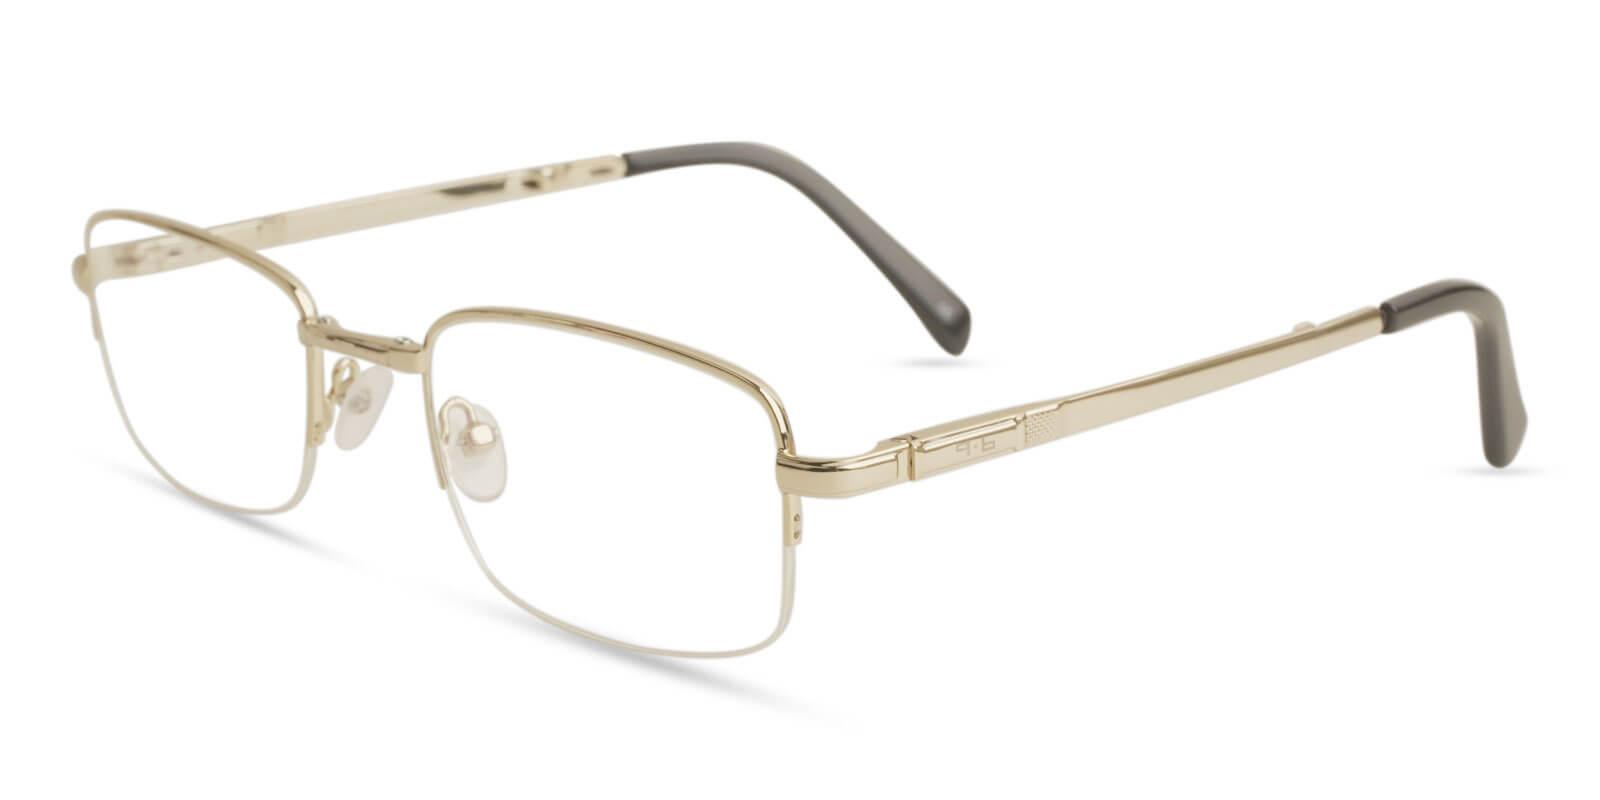 Carson Gold Metal Eyeglasses , Foldable , NosePads Frames from ABBE Glasses